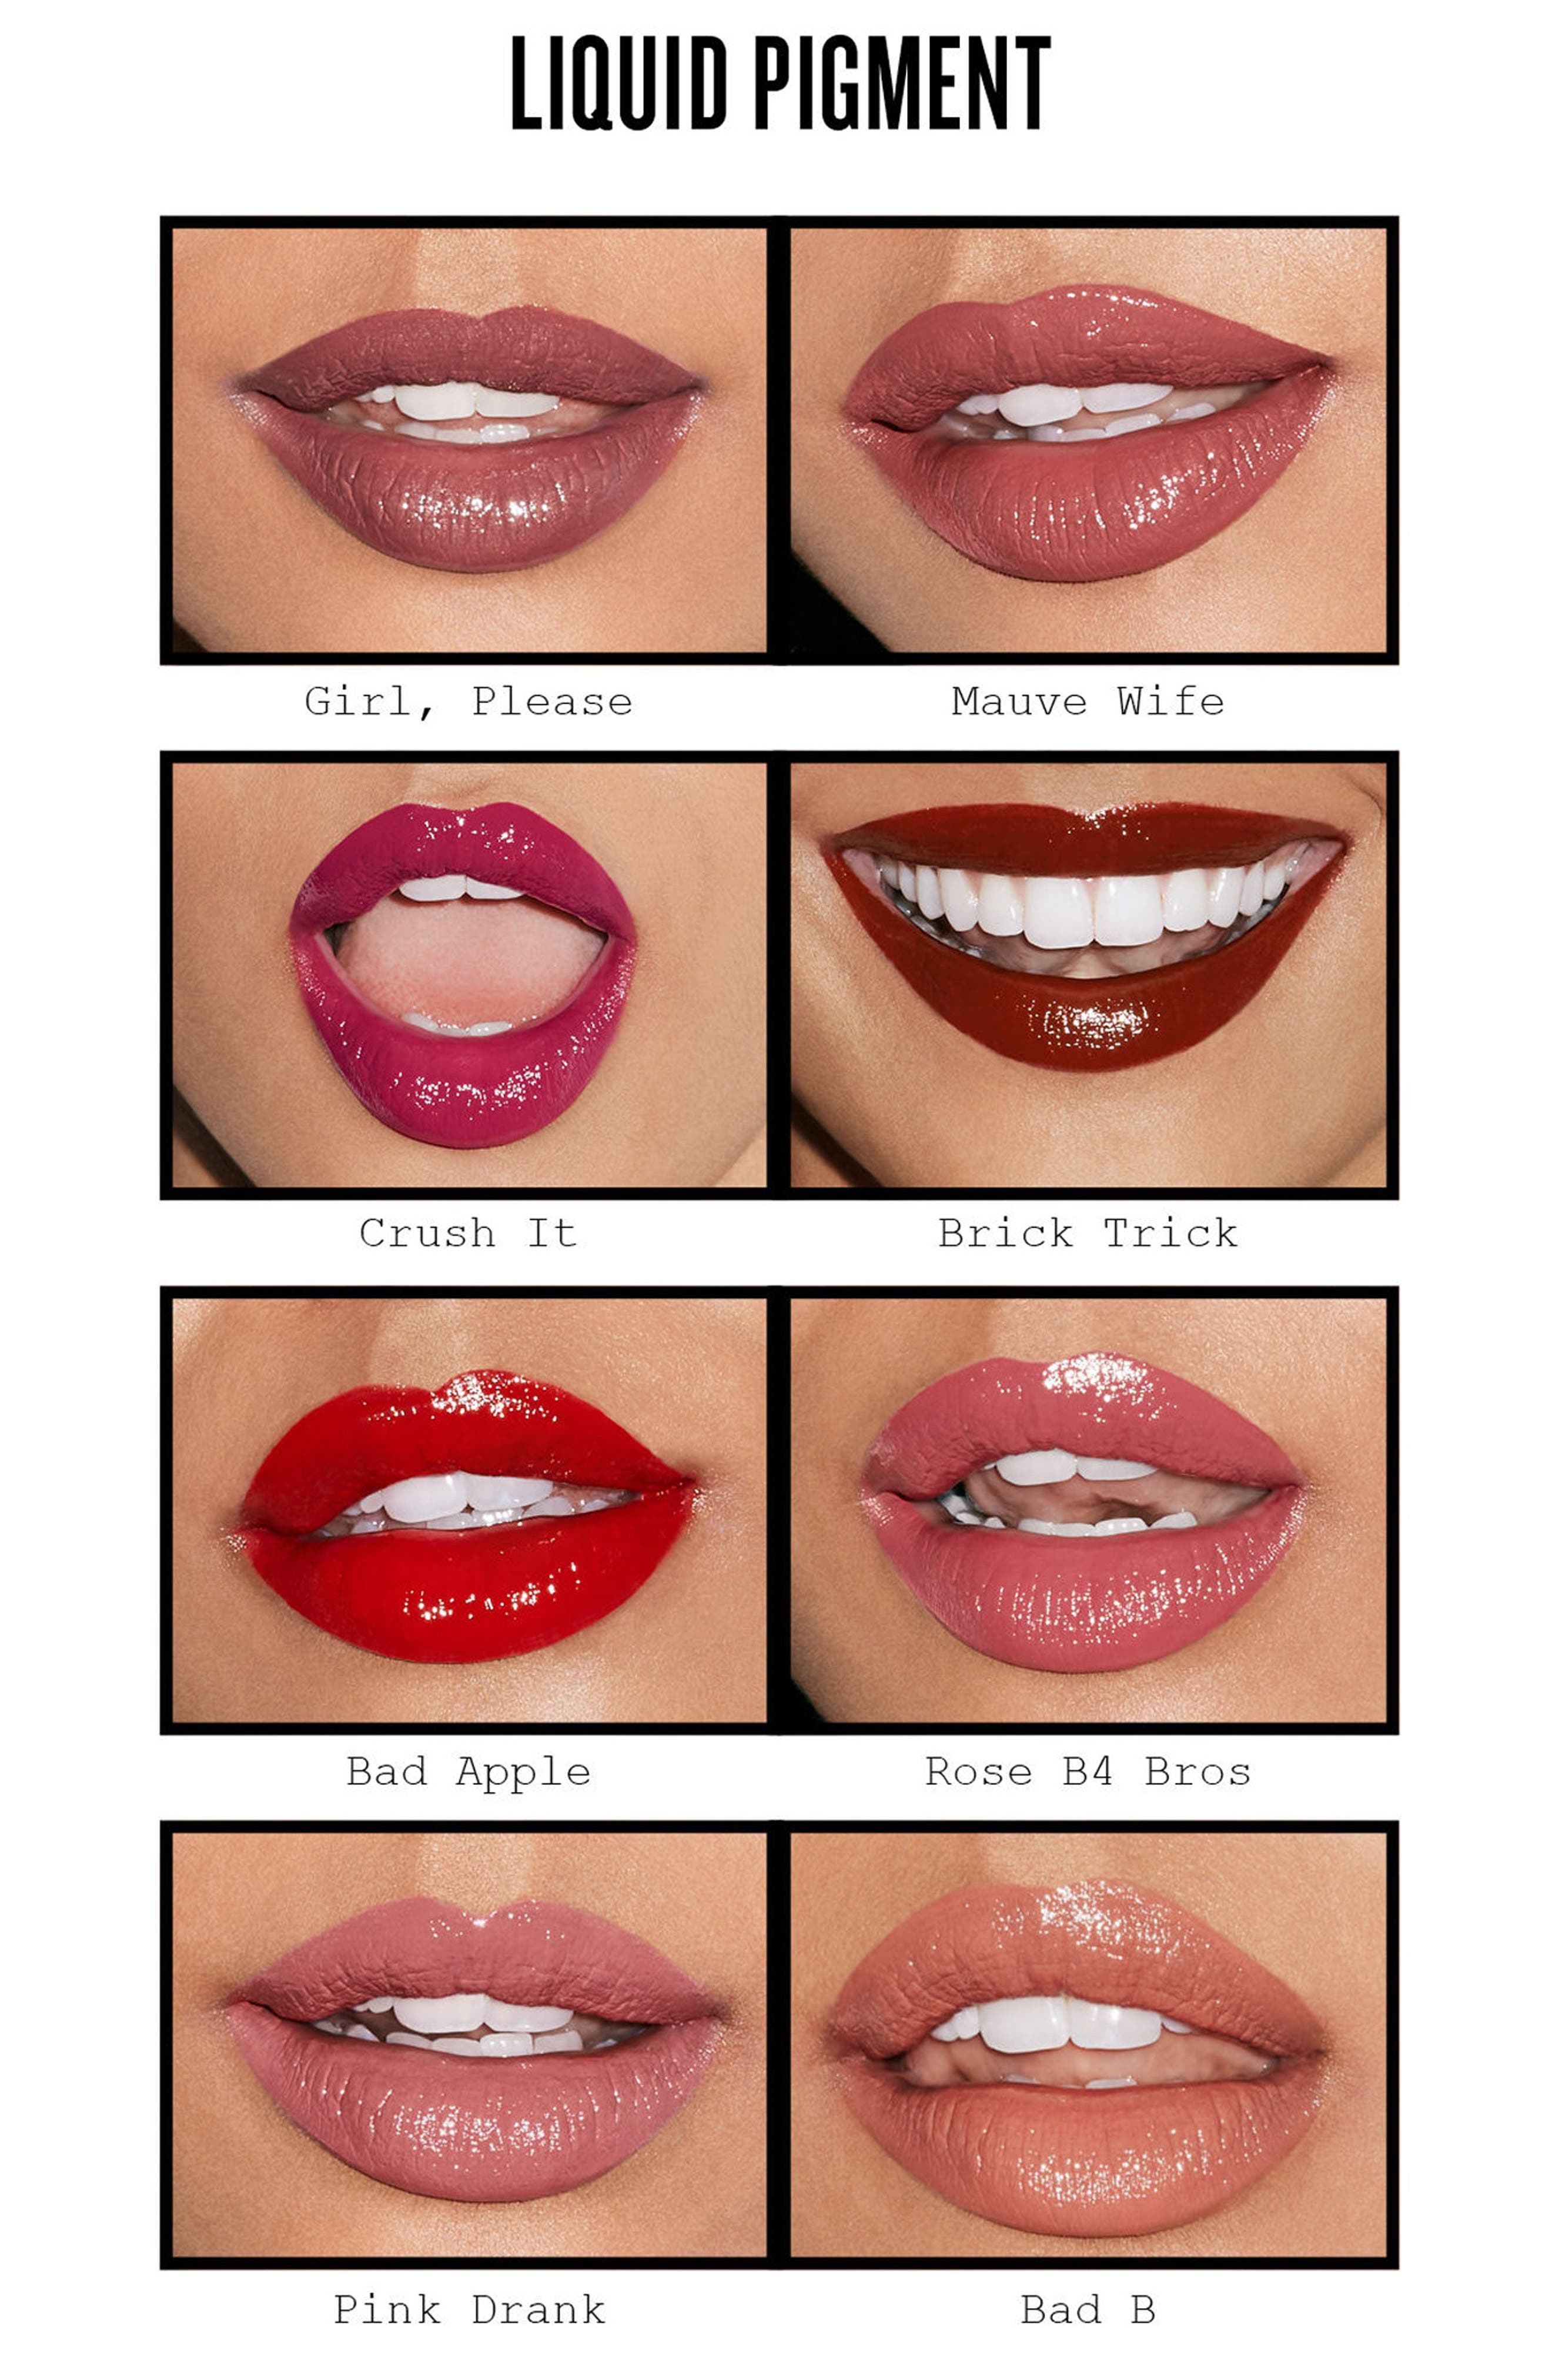 Be Legendary Liquid Pigment Liquid Lip,                             Alternate thumbnail 2, color,                             GIRL, PLEASE